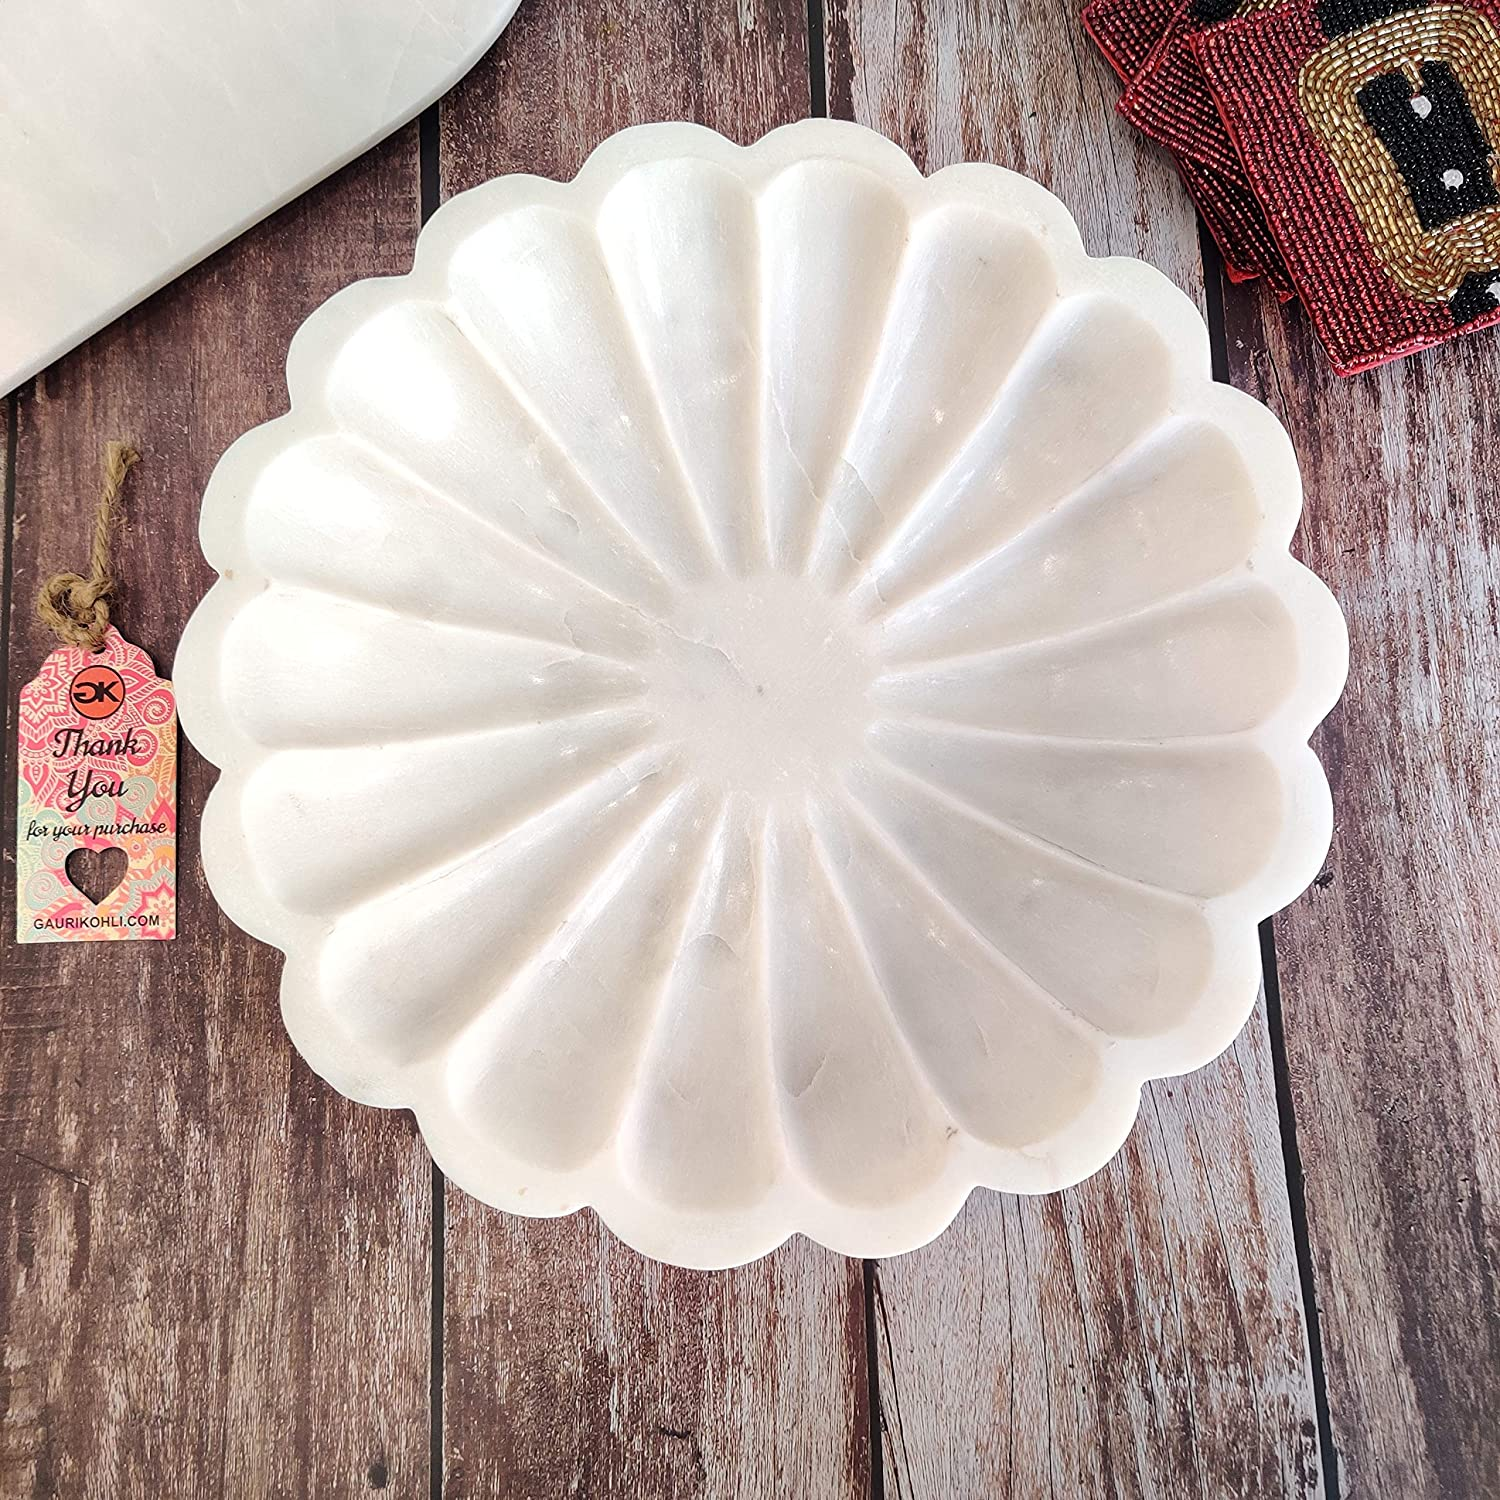 GAURI KOHLI Sunflower Discount Max 84% OFF mail order Chiseled White Bowl Décor Marble 12